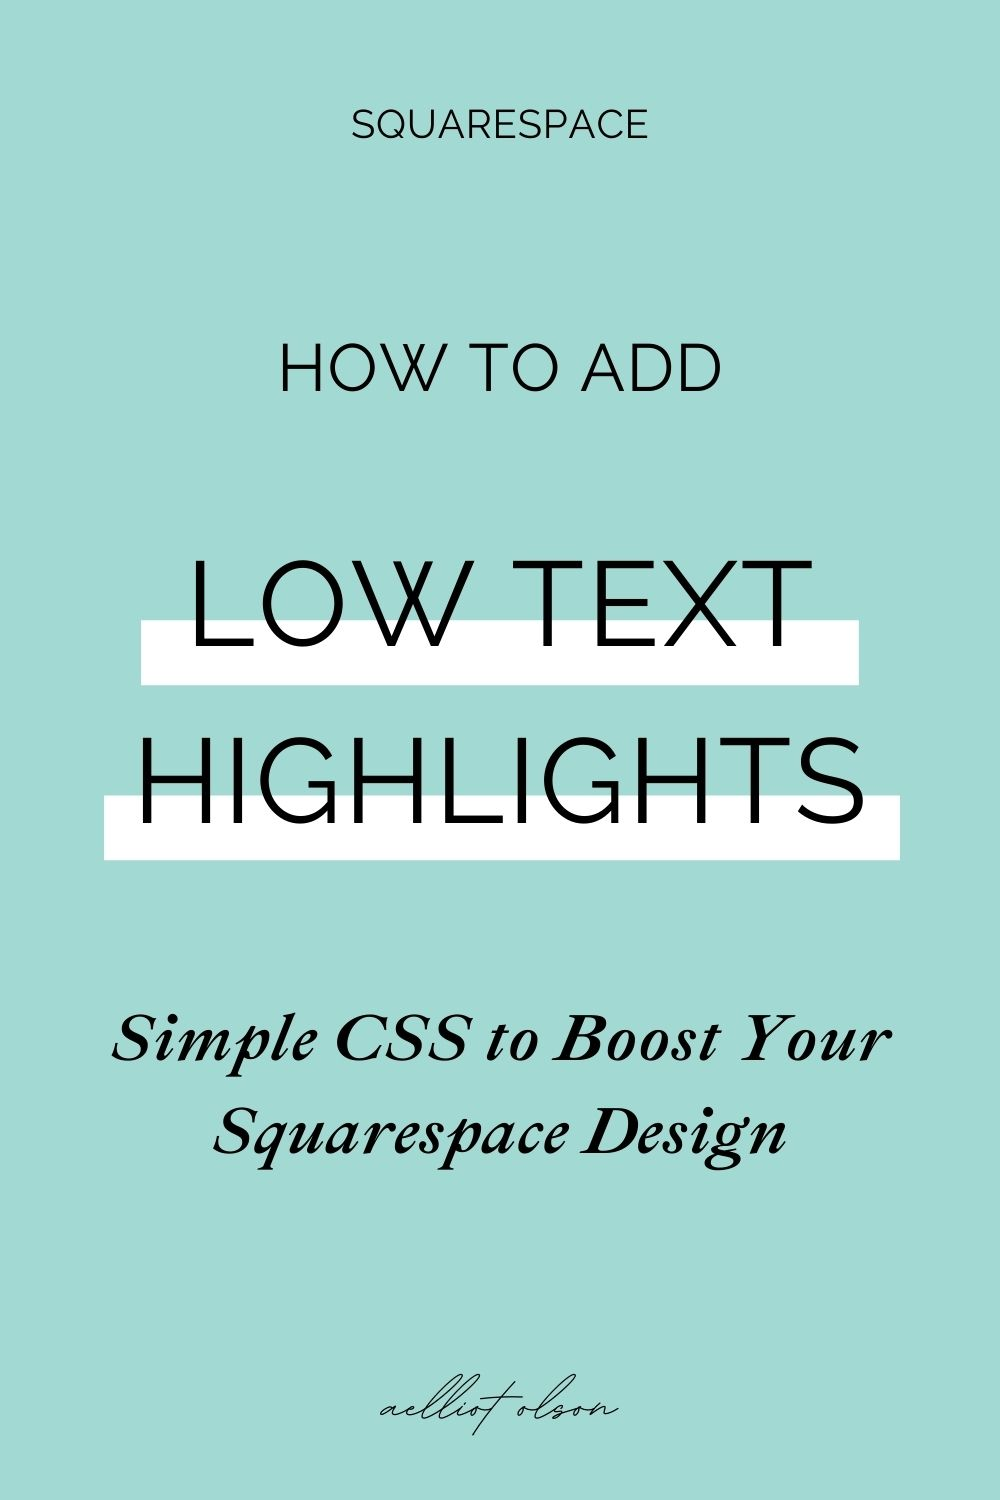 squarespace add highlight text css article